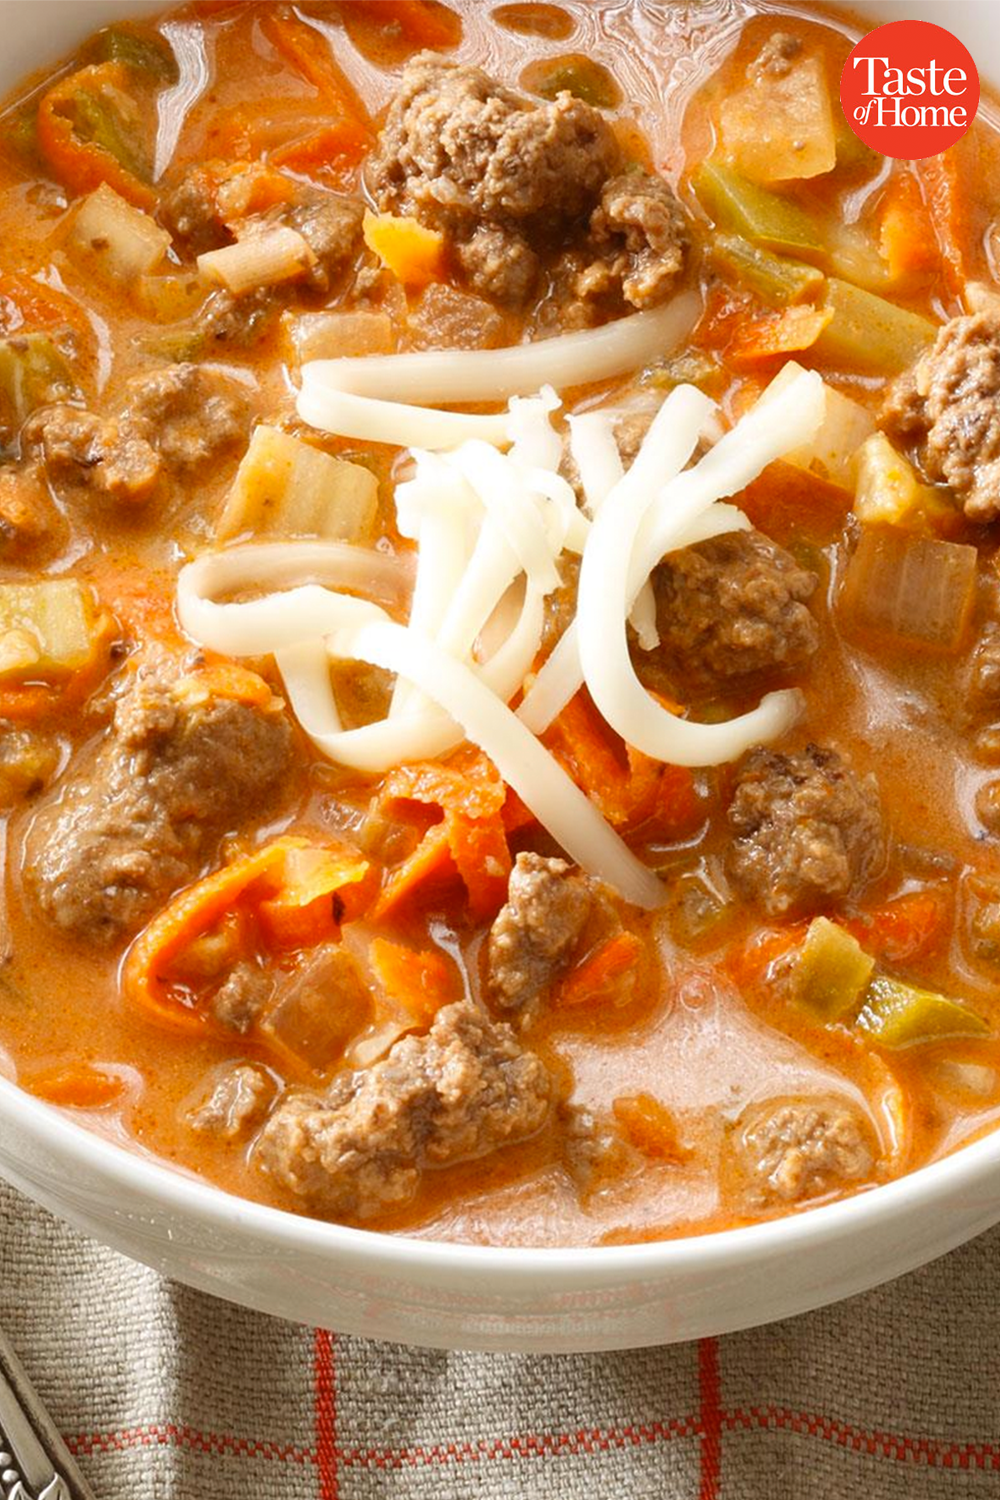 Grandma's Best Soups (All Made with Love!)